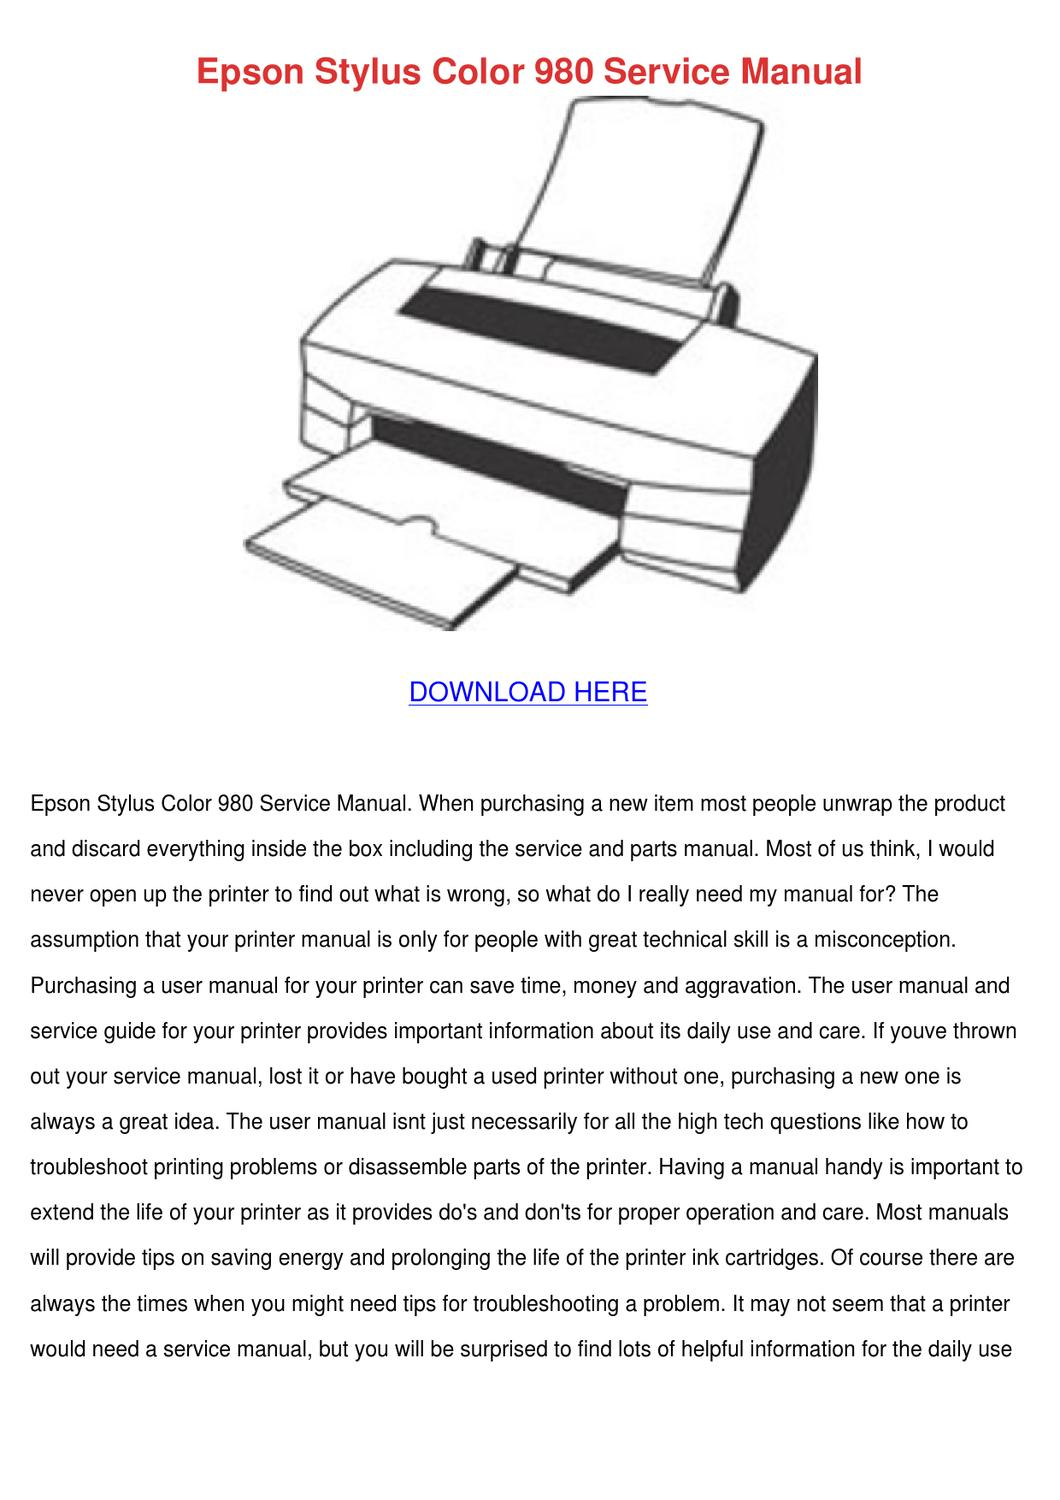 Epson Stylus Color 980 Service Manual by Britta Taunton - issuu